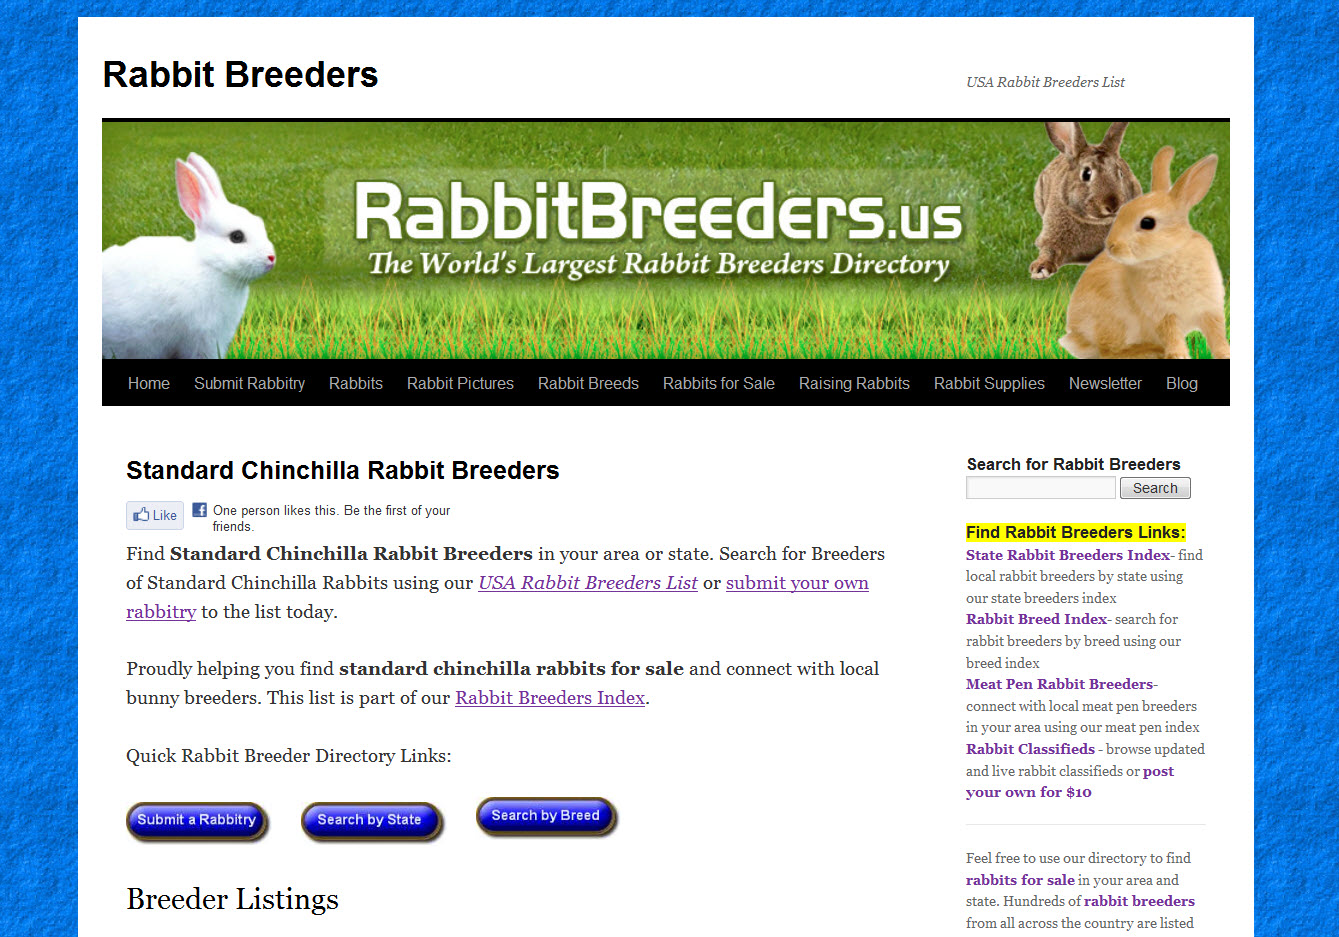 Standard Chinchilla Rabbit Breeders